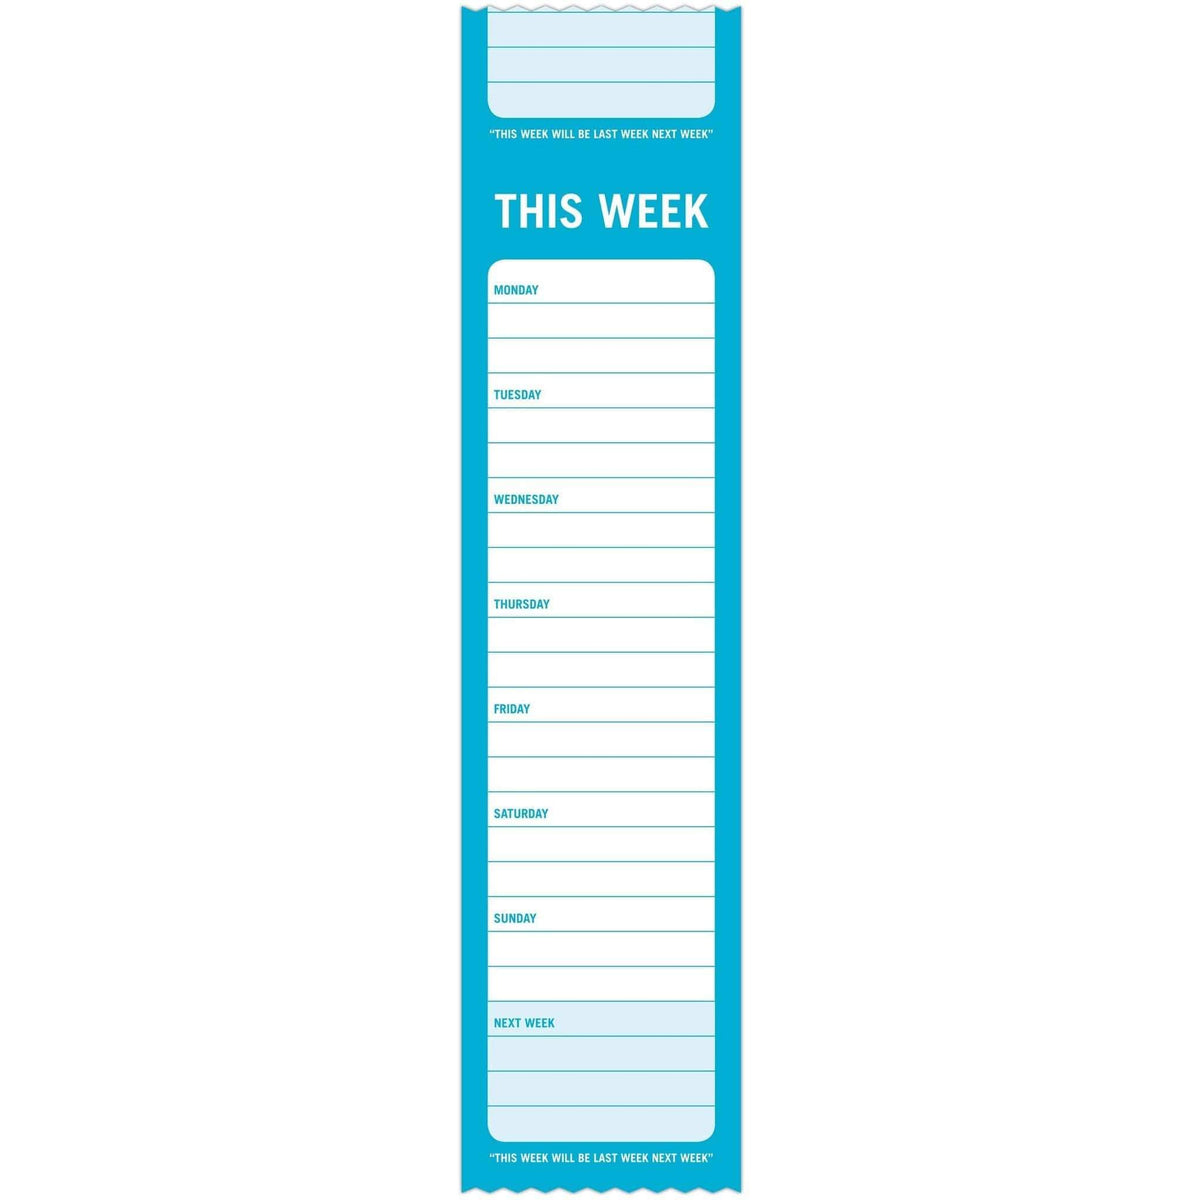 This Week Sticky Roll Notes